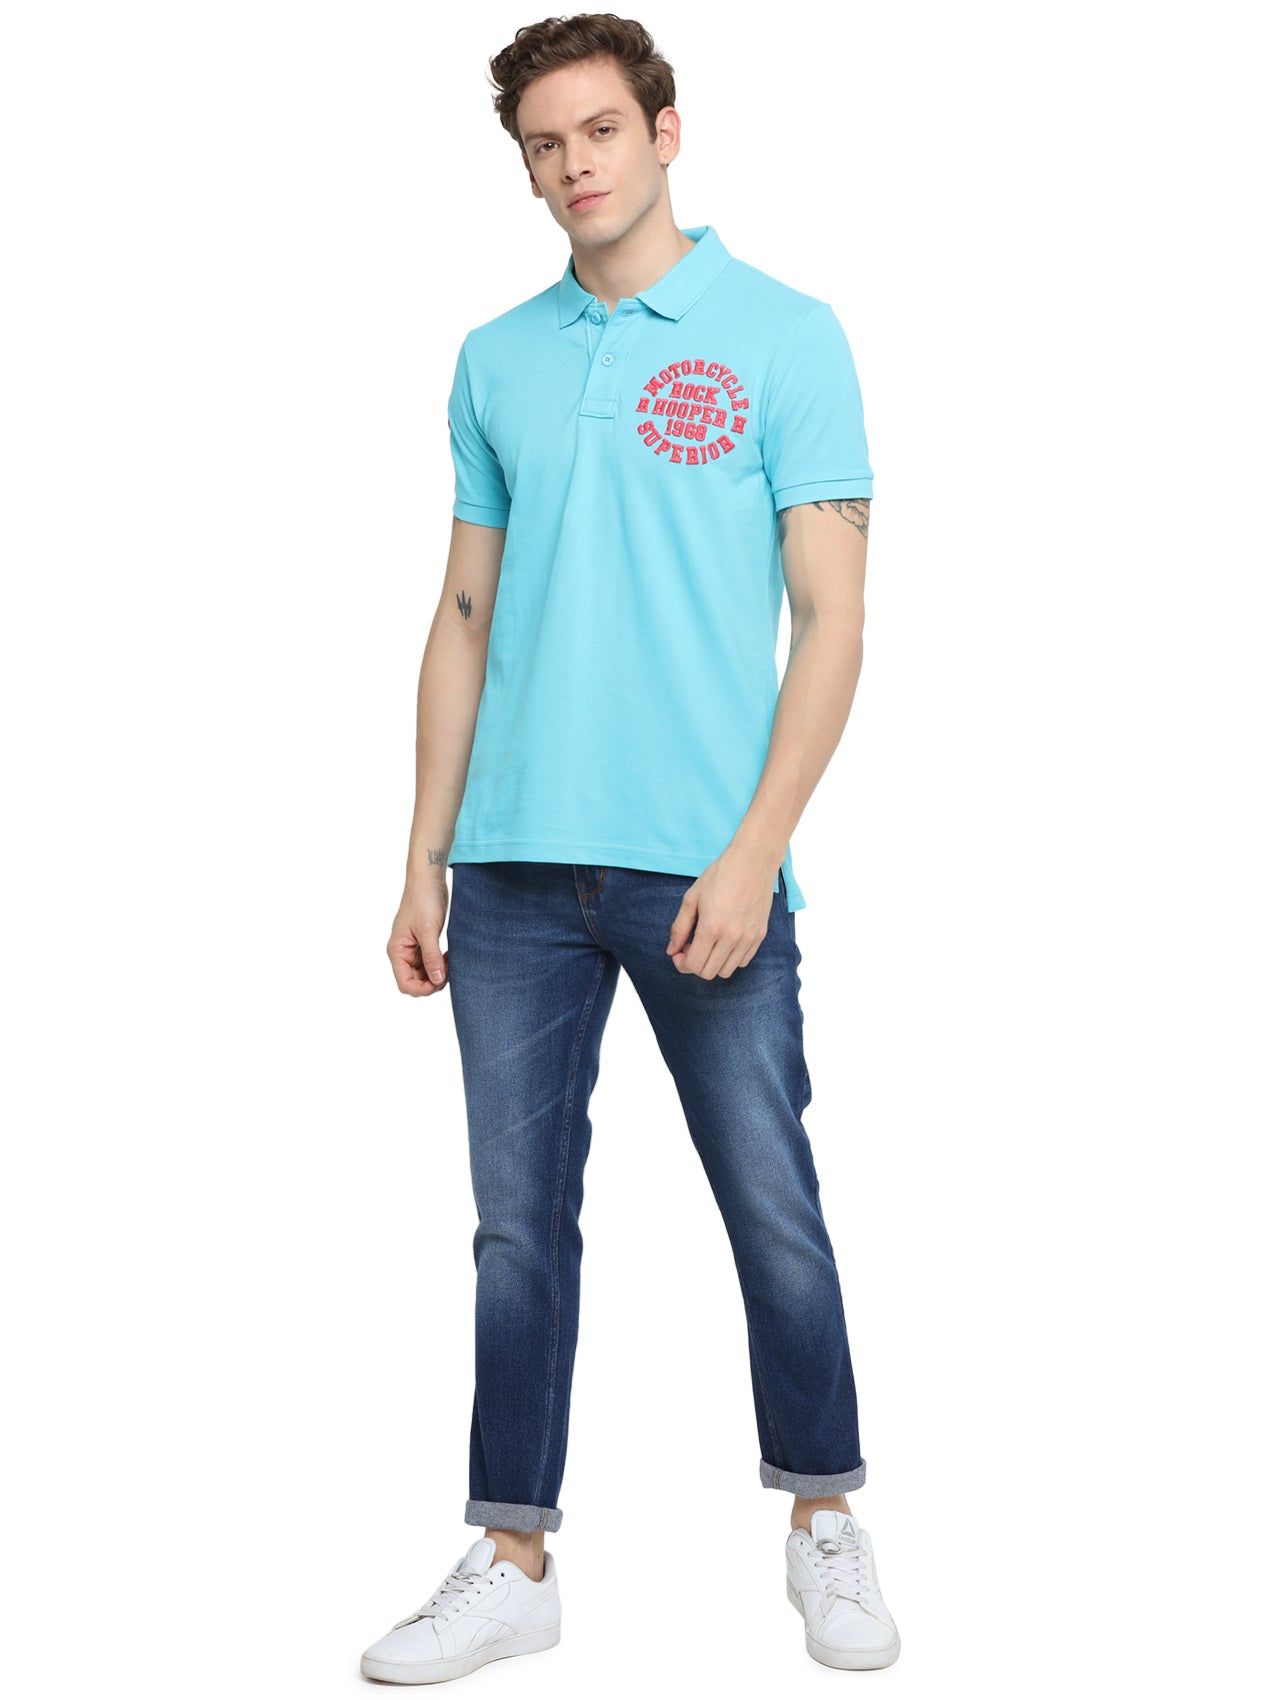 Rock Hooper Men's Solid Half sleeve Cotton Aqua Blue Polo T-shirt